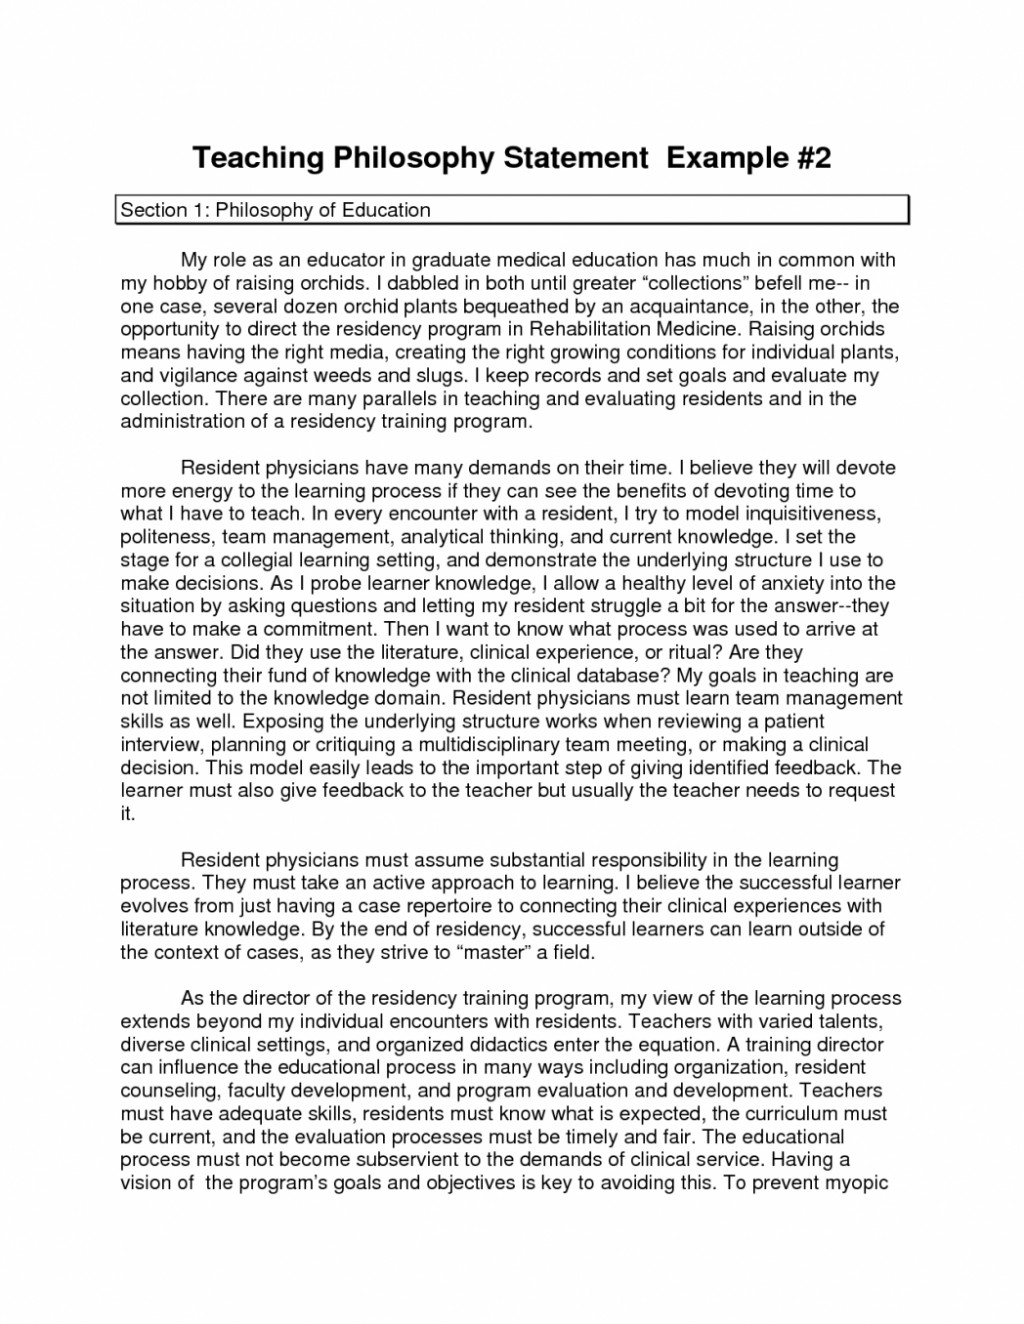 007 Exploratory Essay Example Definition Writing An Introduction Examples Statement Of Teaching Philosophy Mg5 Free Thesis Topics Research Remarkable Outline Large